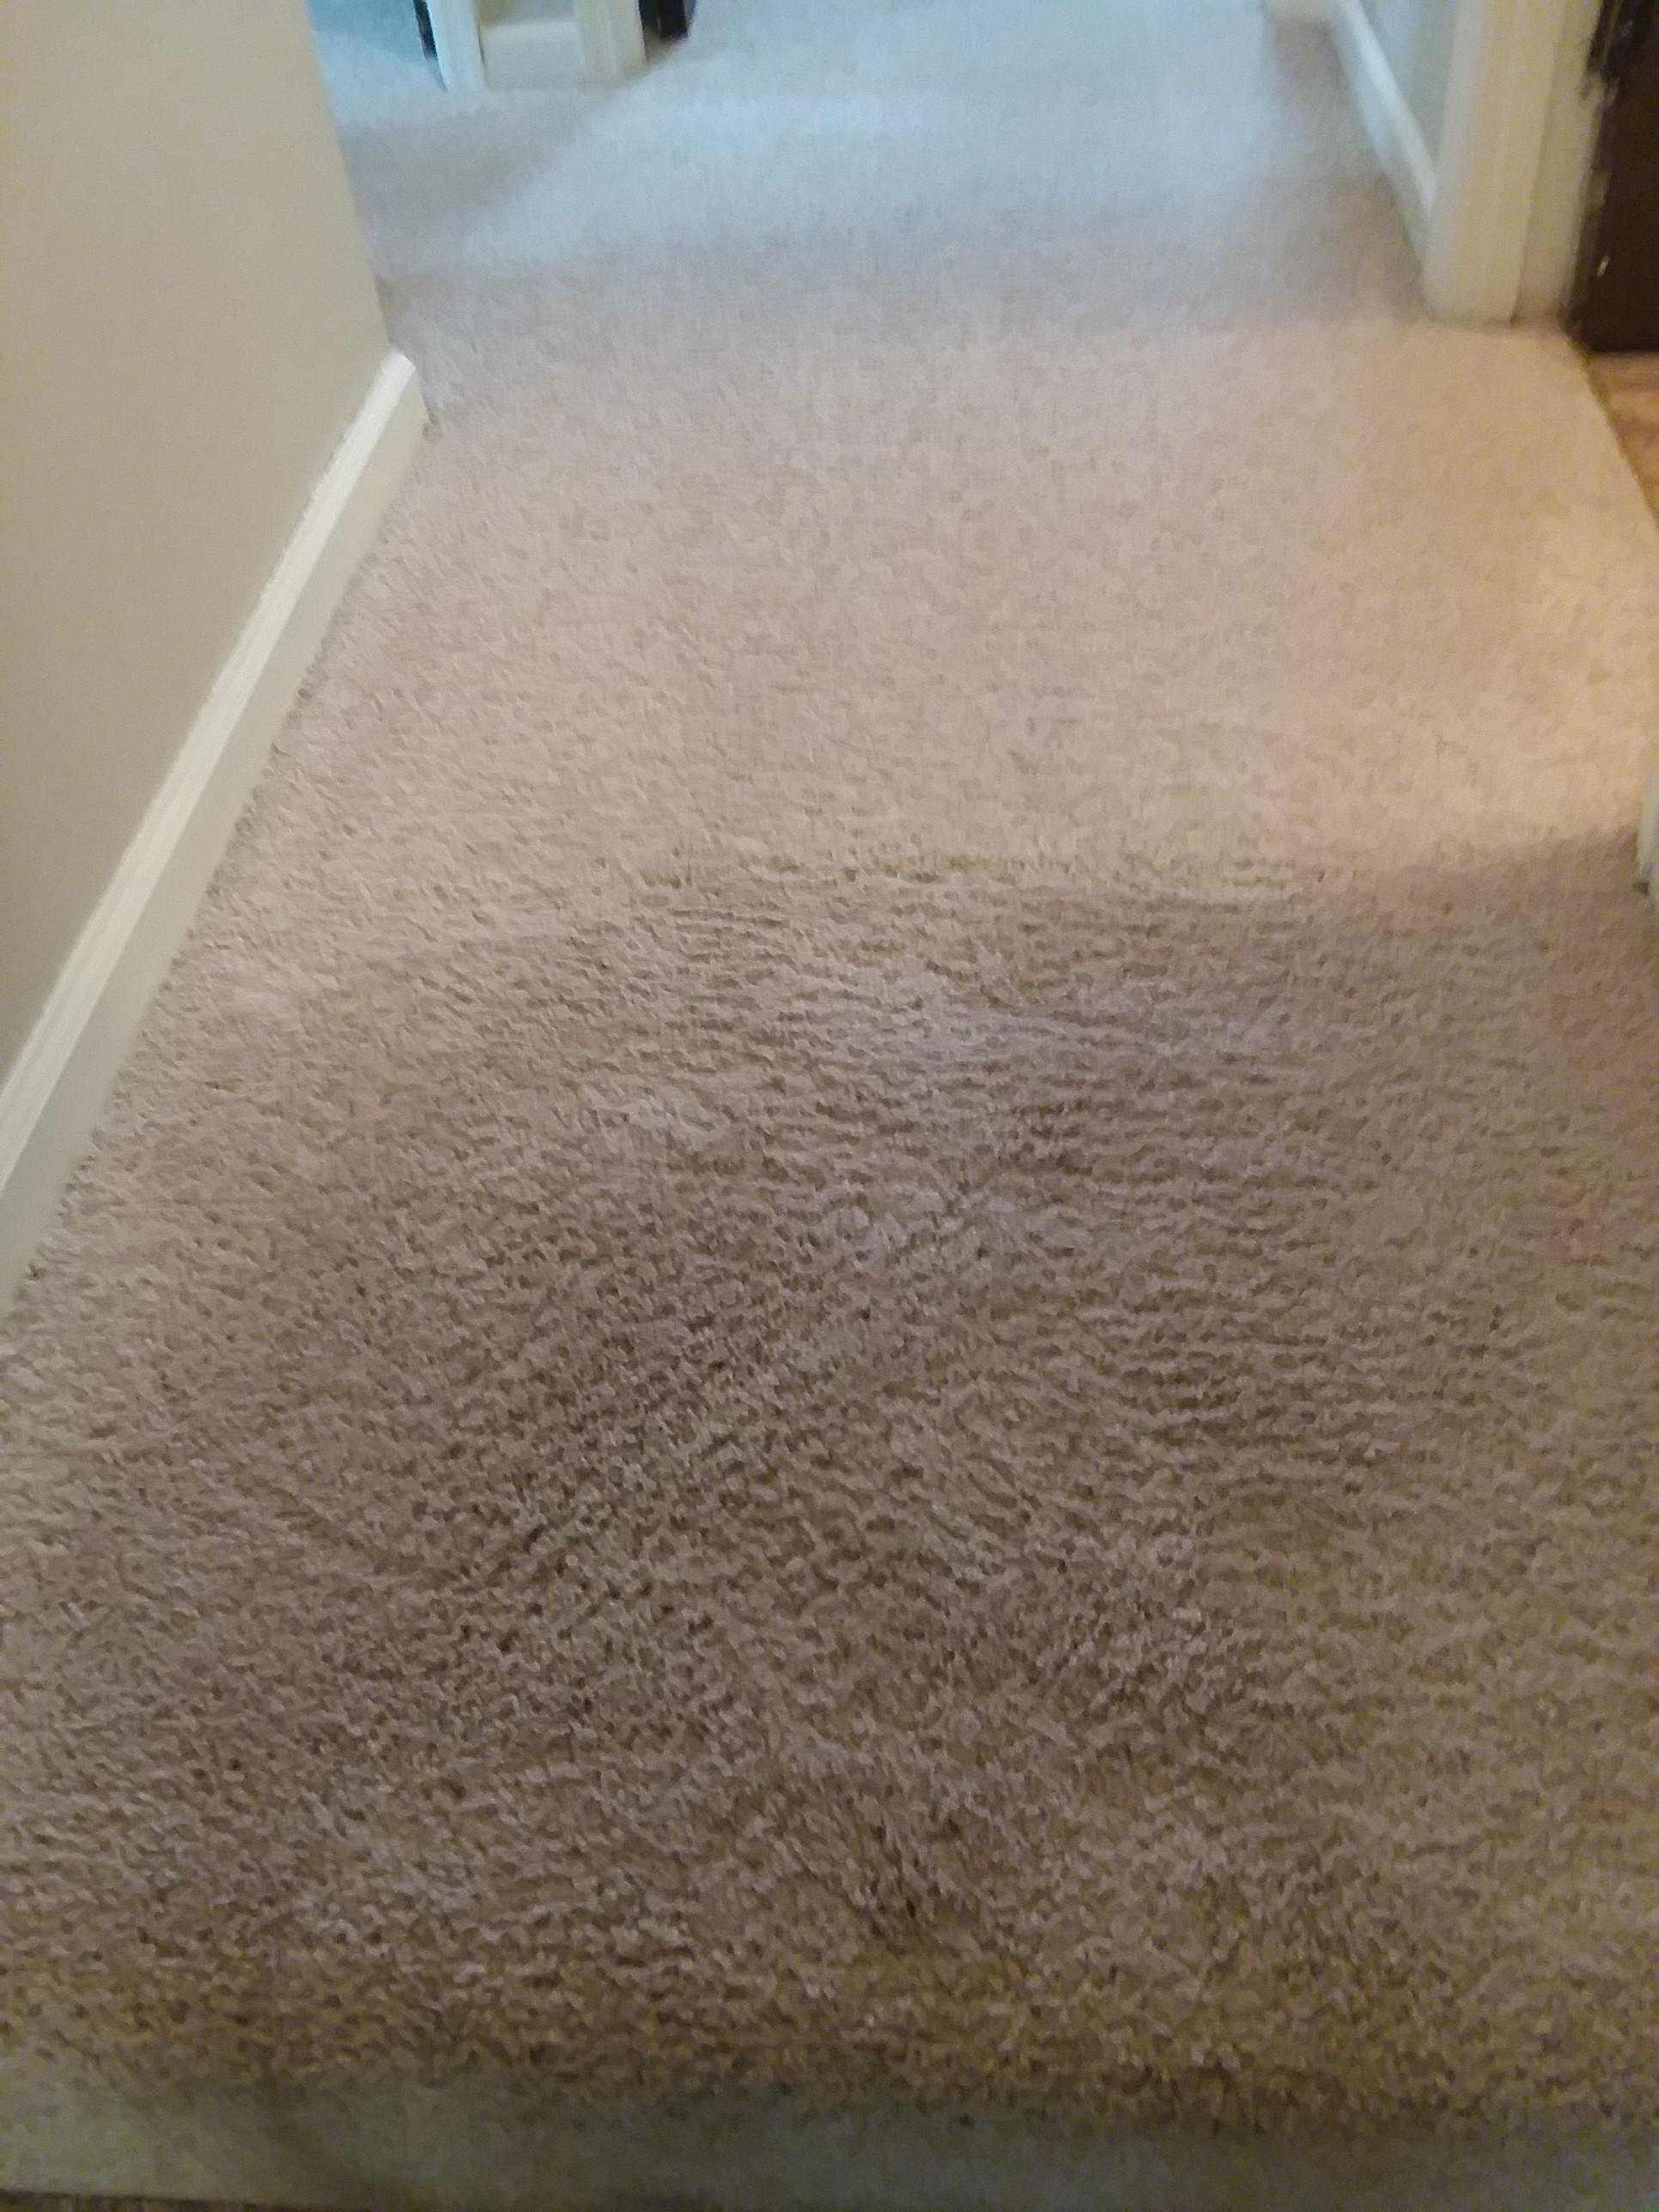 Clean Rite Carpet Cleaning image 45